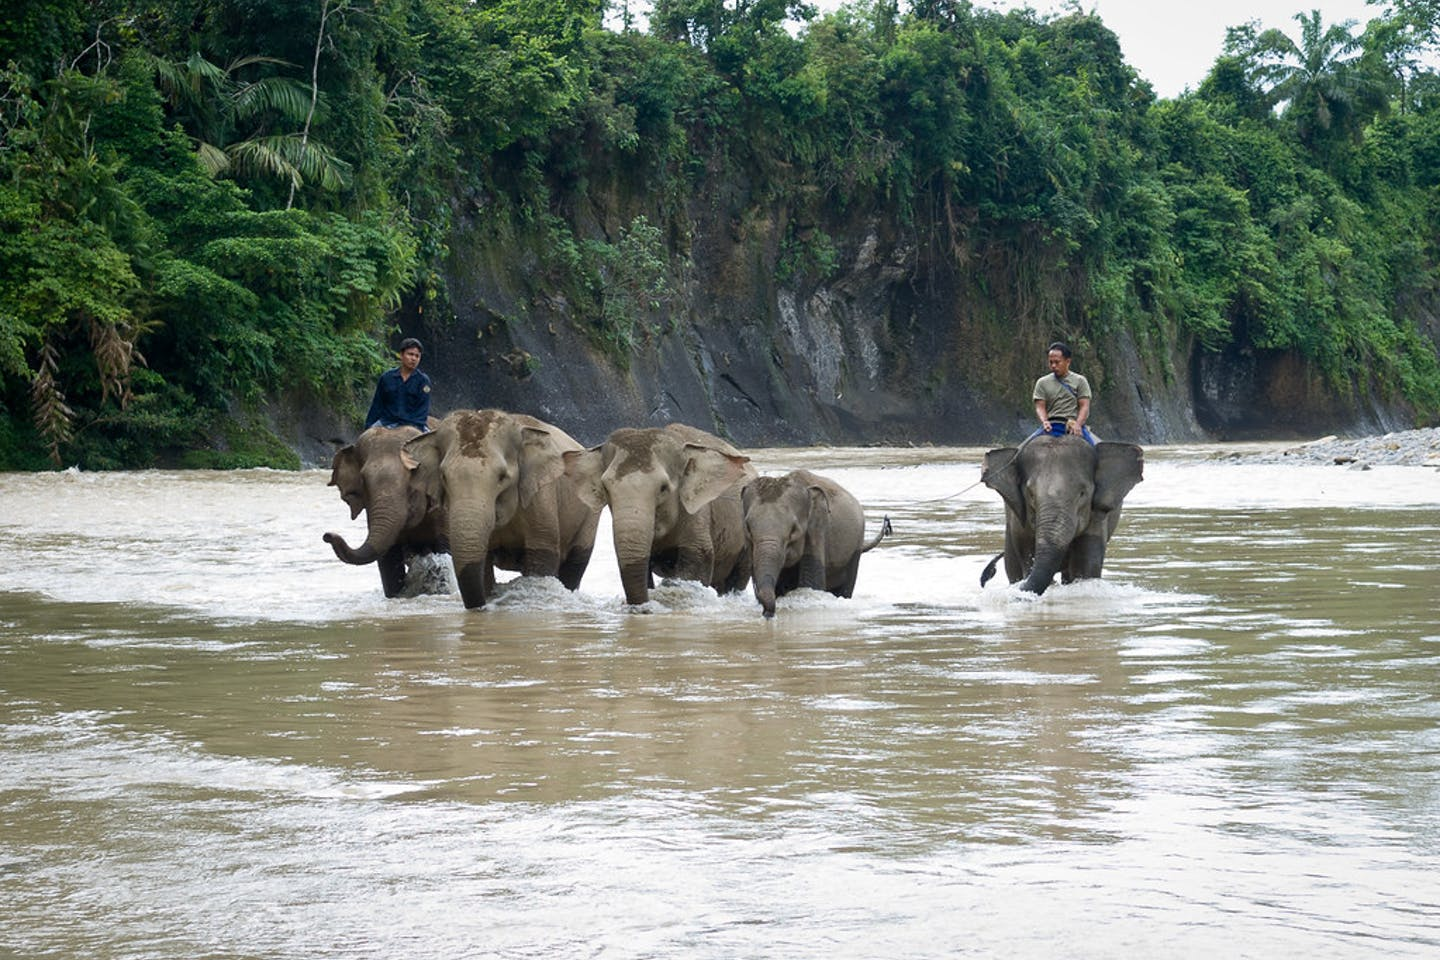 Elephants in southern Sumatra, Indonesia